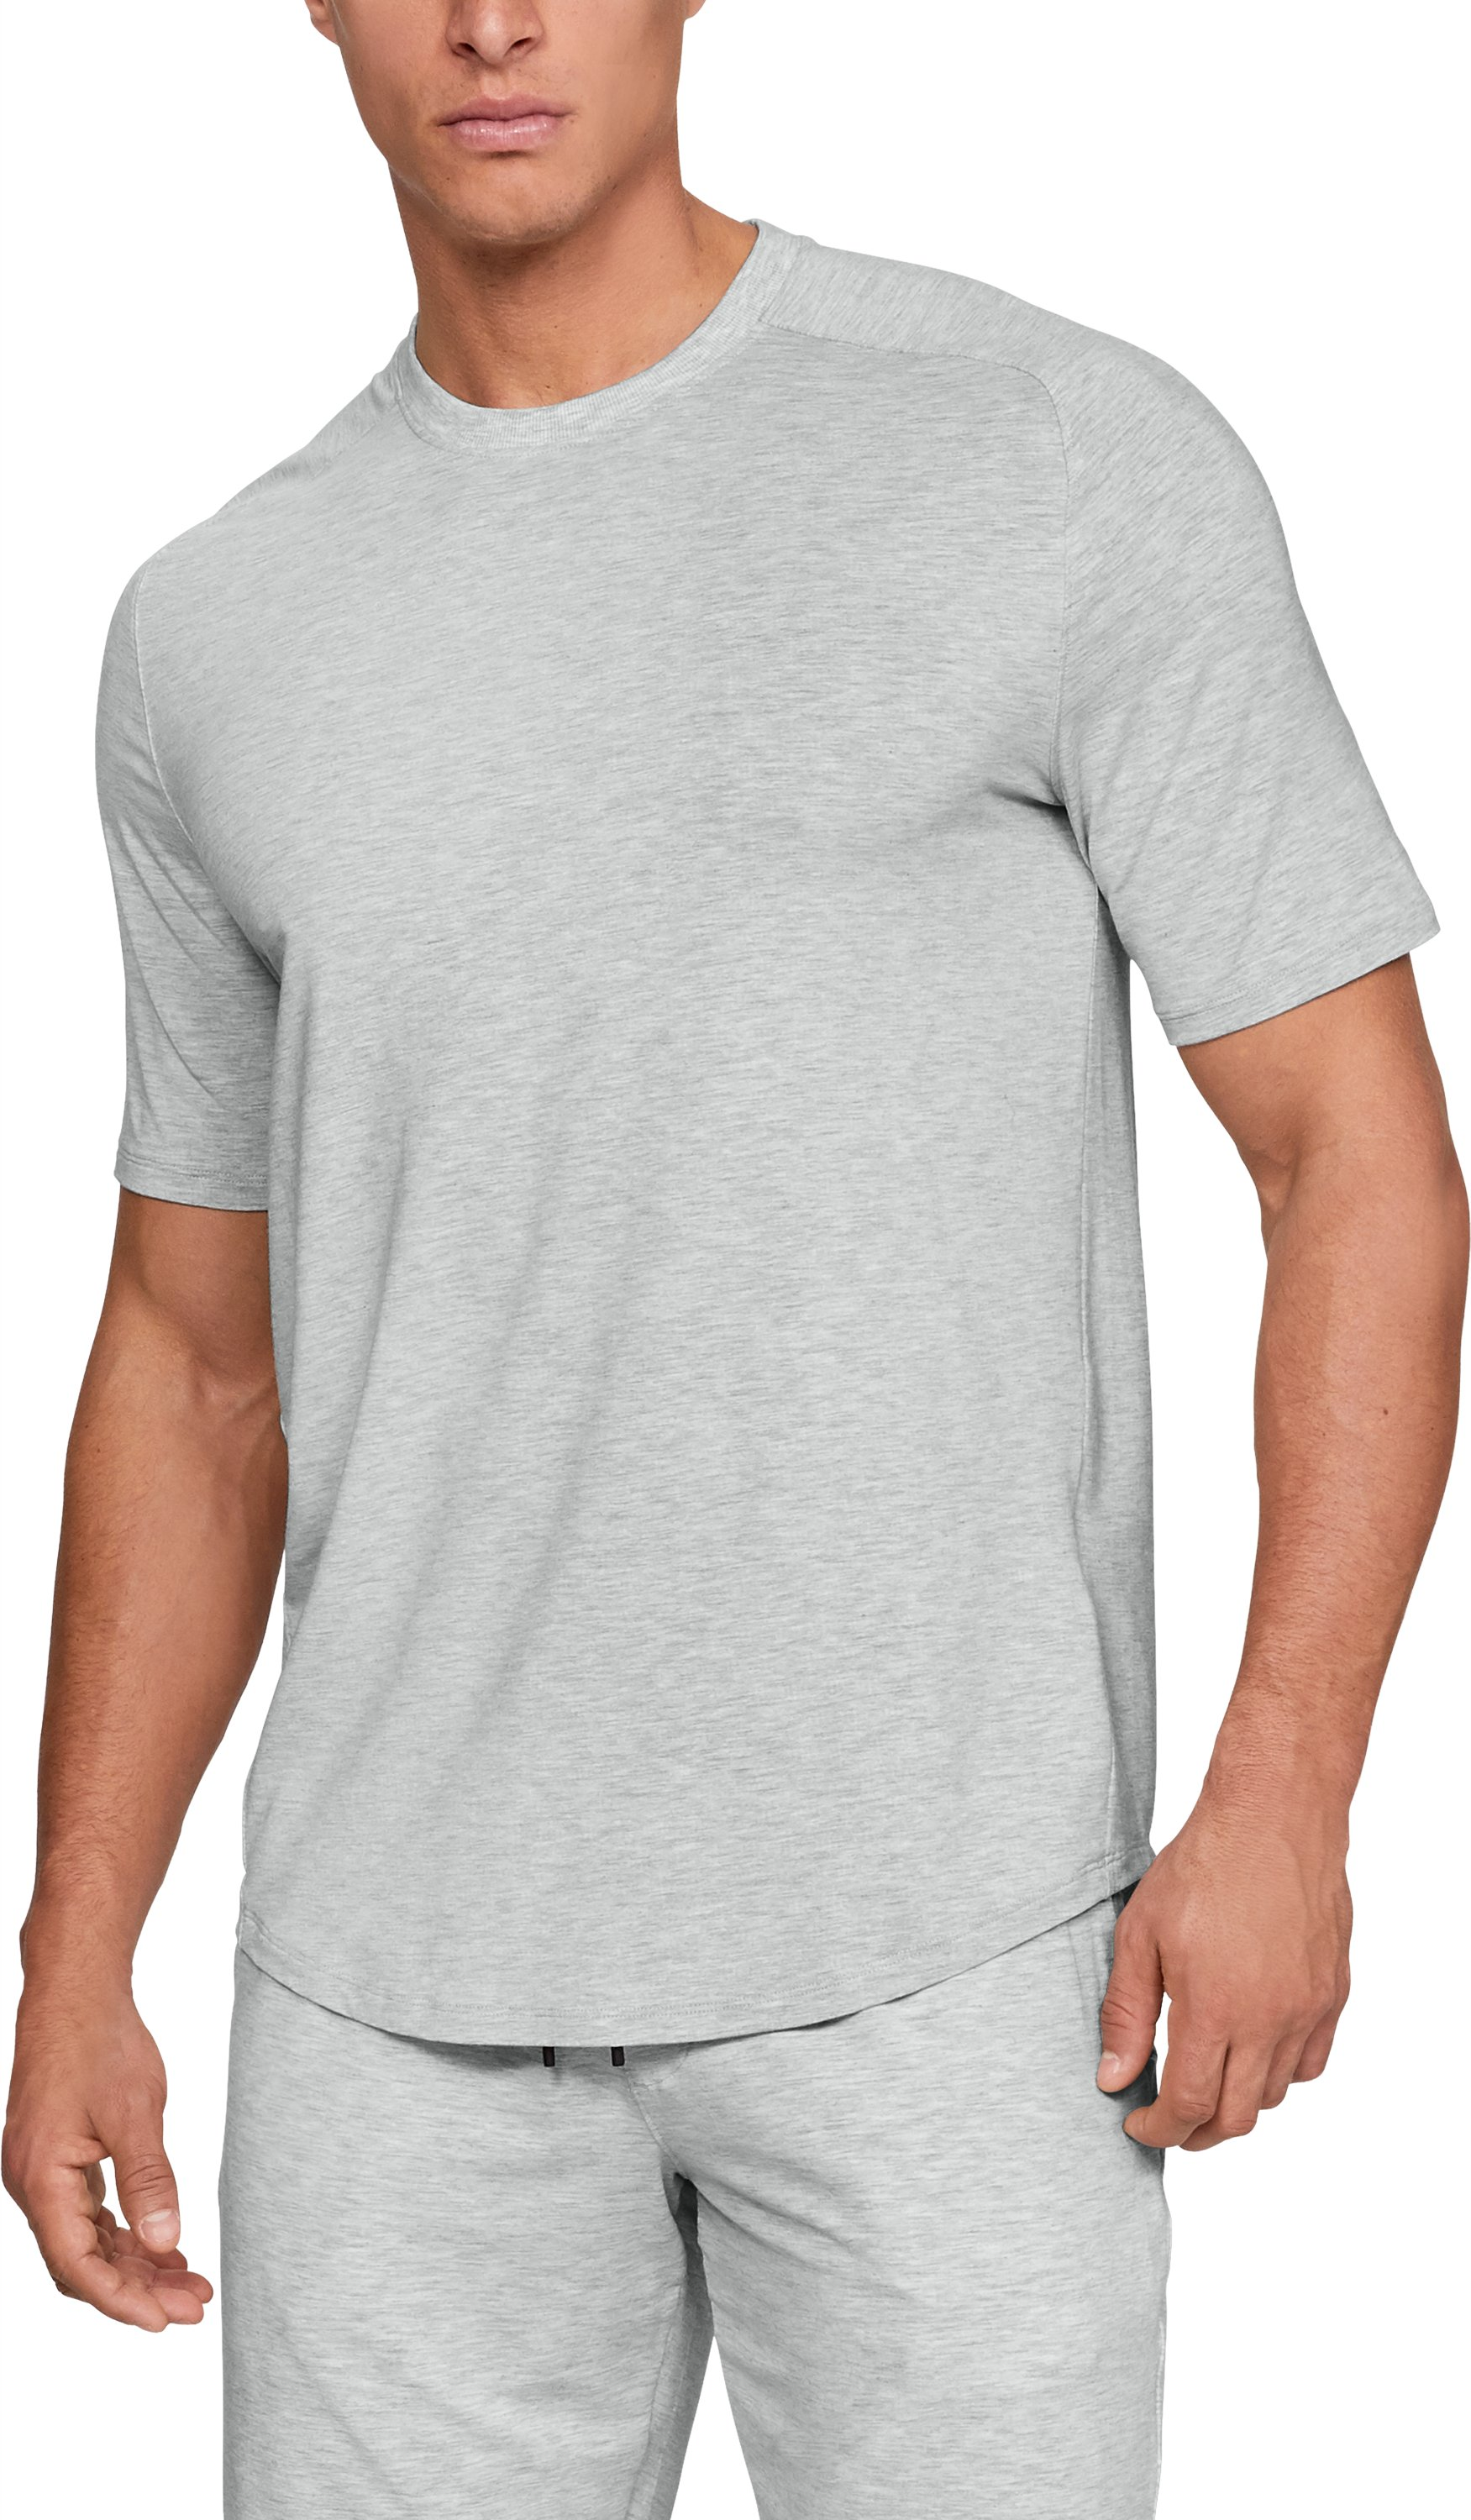 Men's Athlete Recovery Sleepwear™ Ultra Comfort Short Sleeve, Elemental Medium Heather,